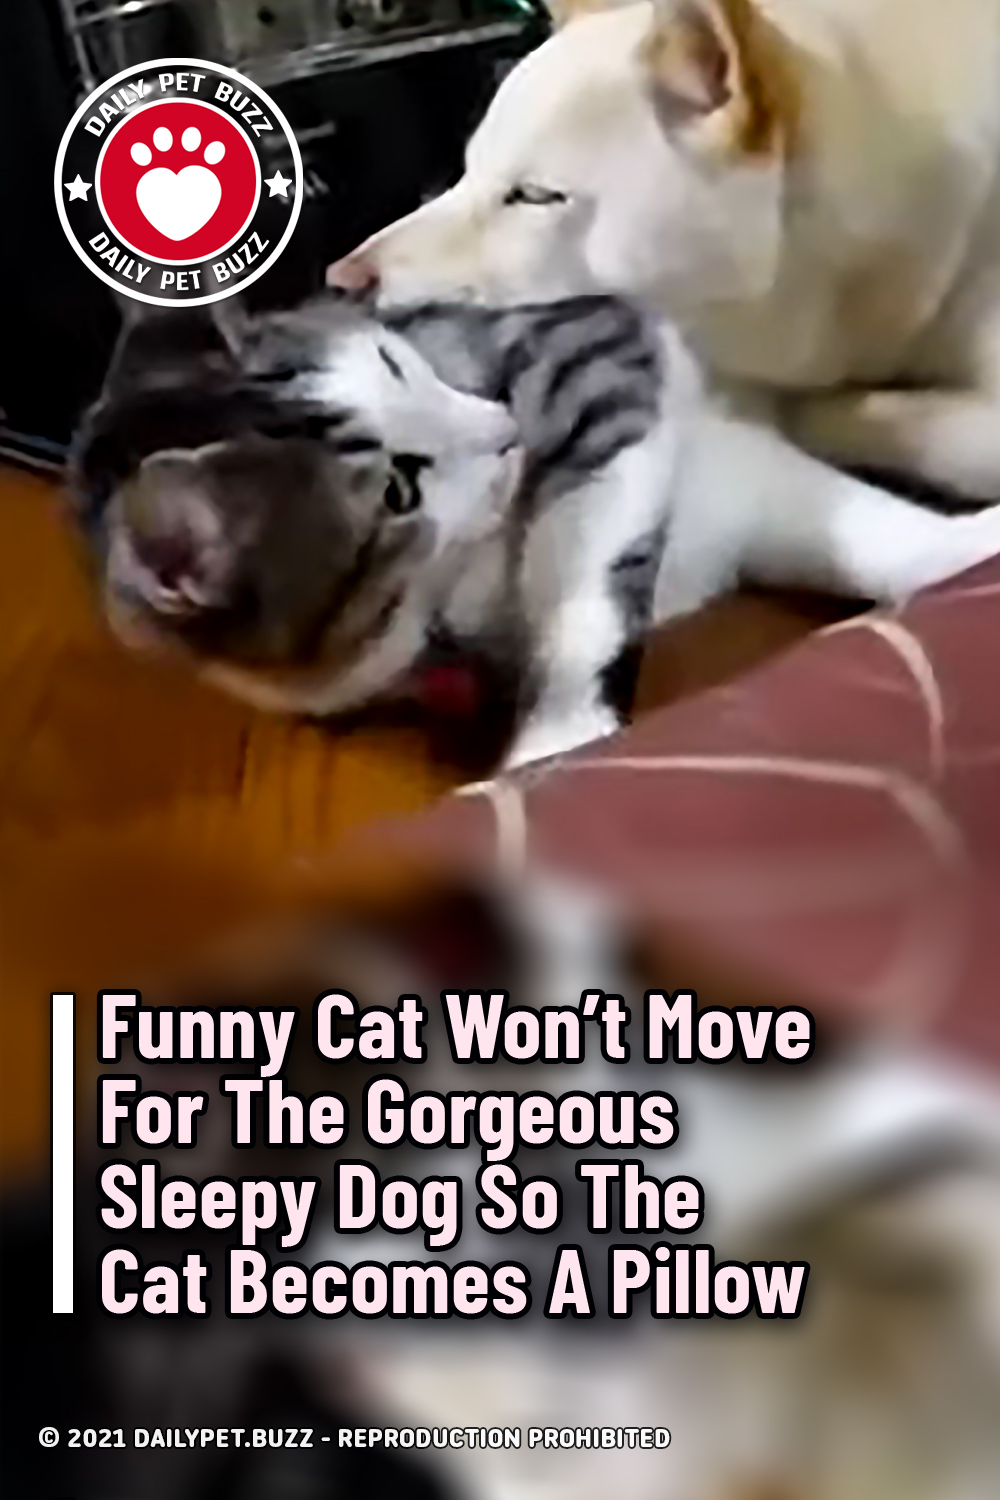 Funny Cat Won\'t Move For The Gorgeous Sleepy Dog So The Cat Becomes A Pillow